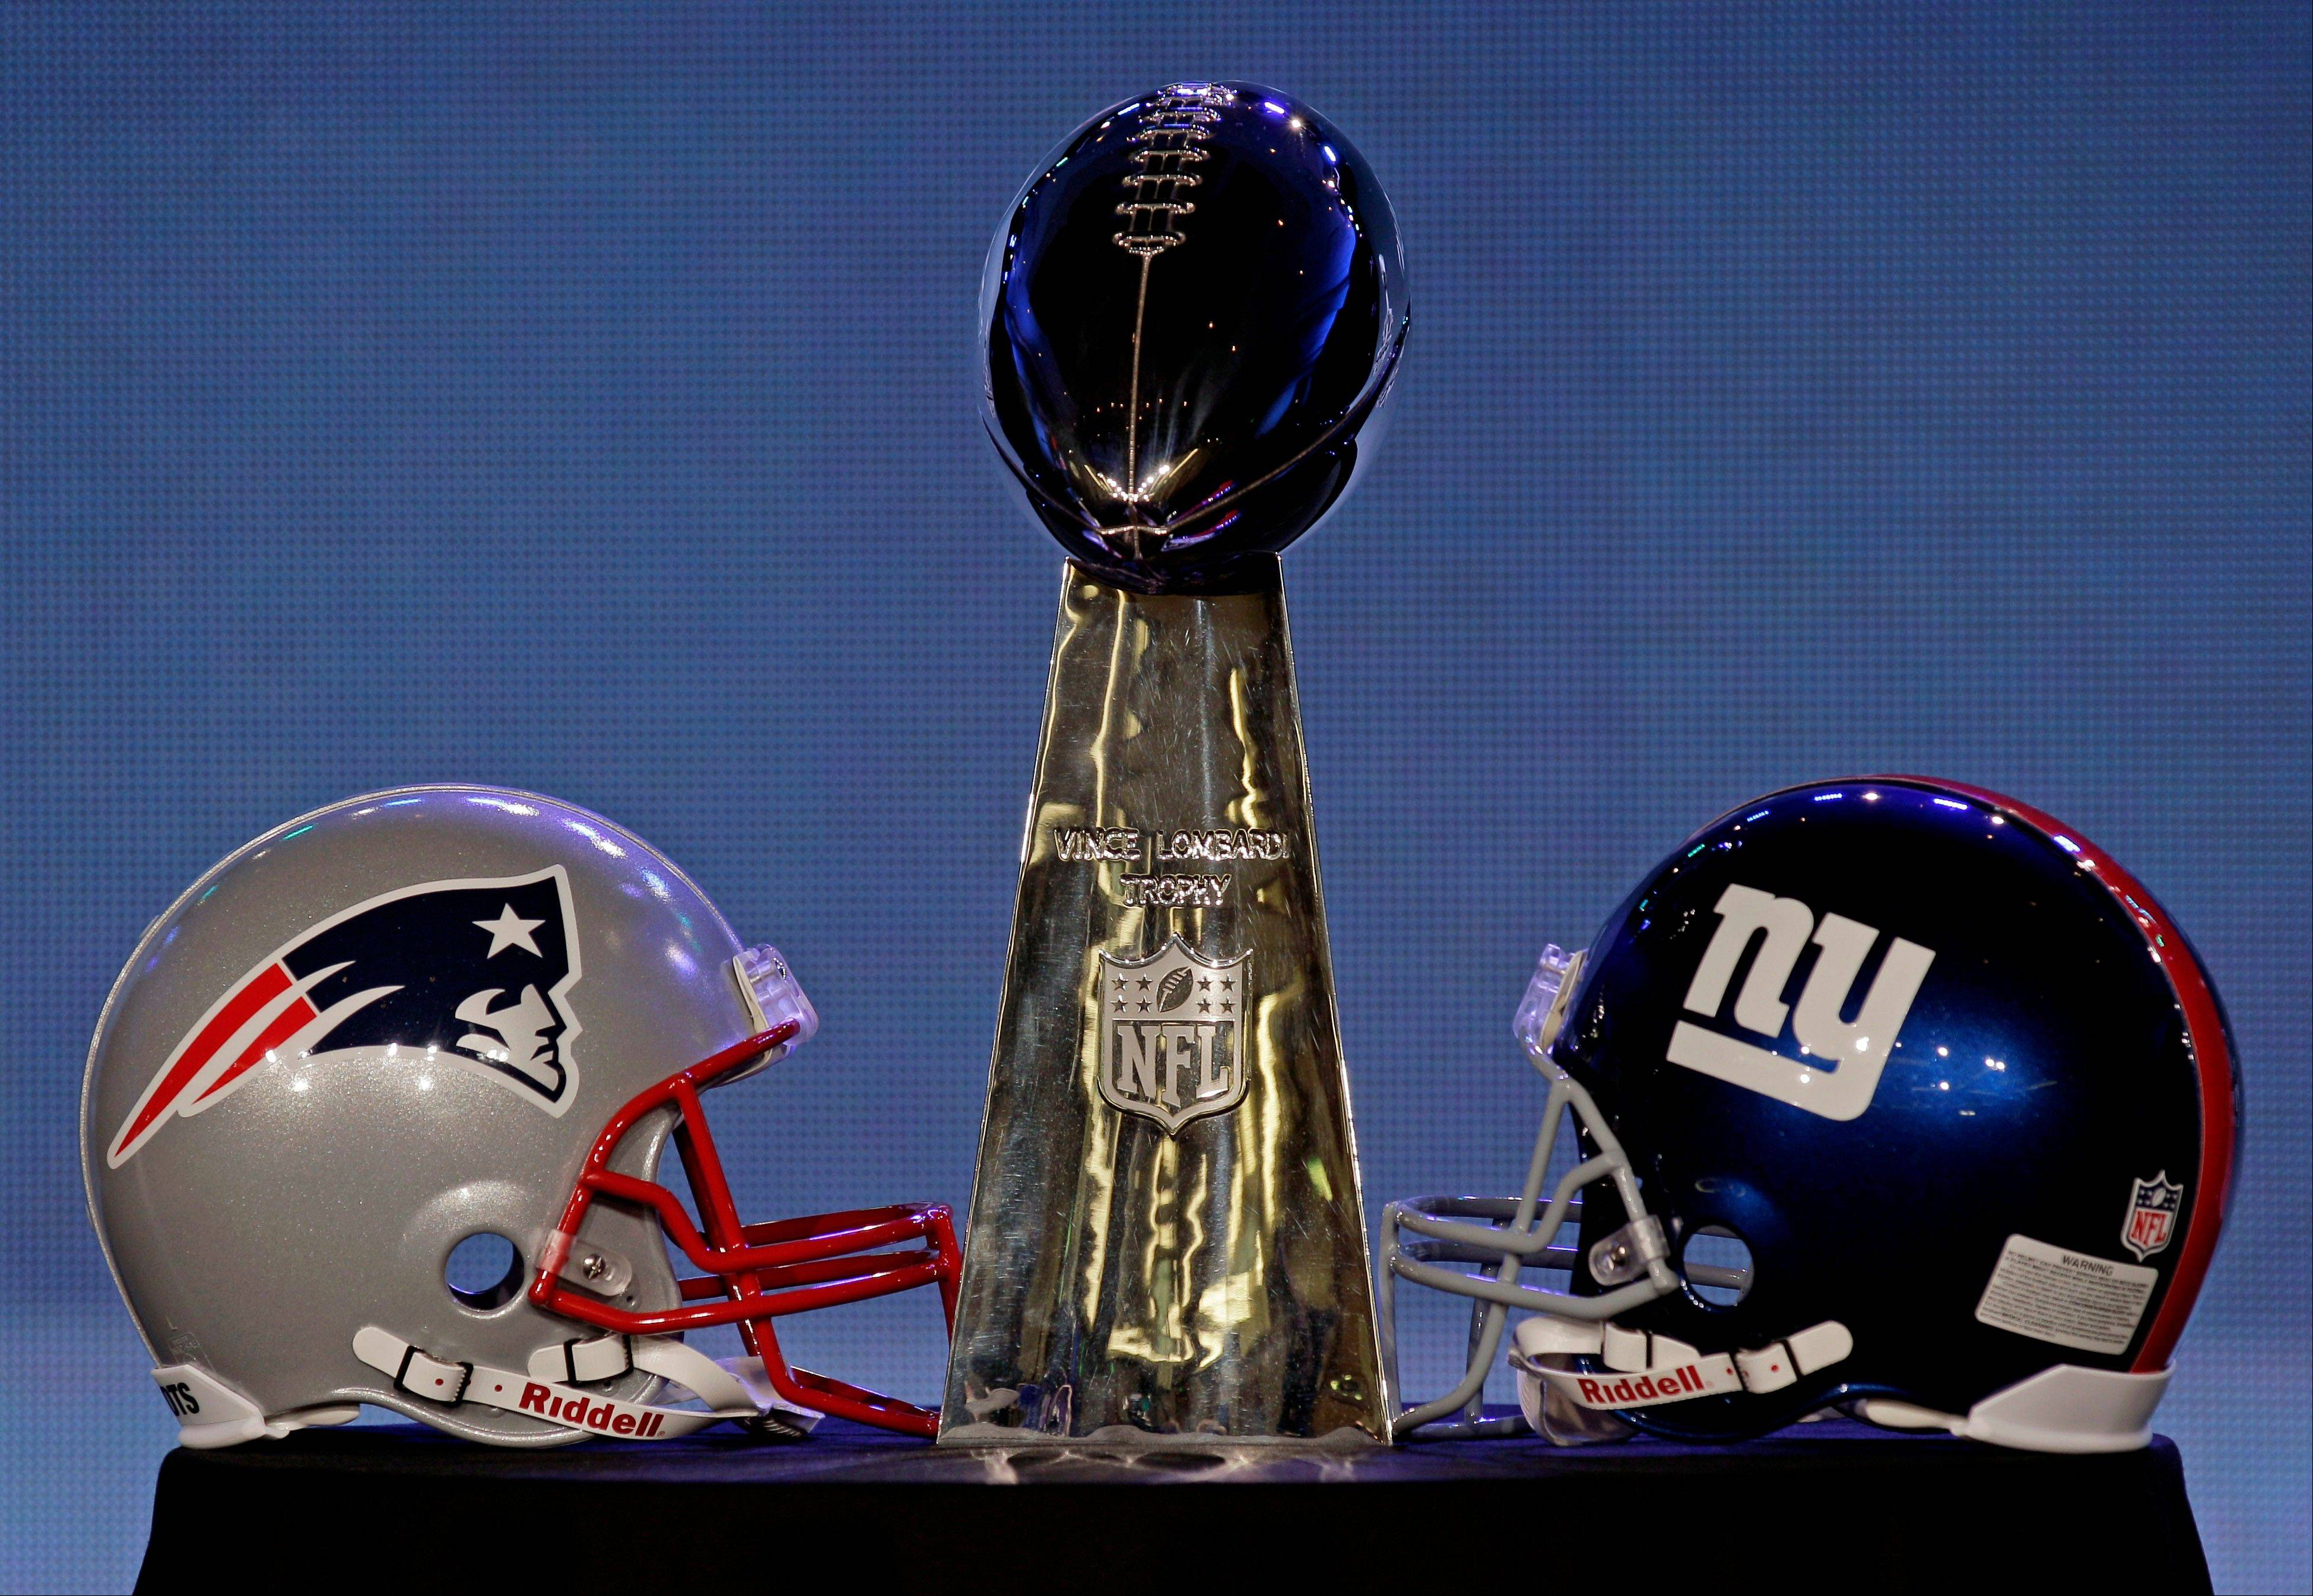 The New England Patriots and the New York Giants will battle for the Vince Lombardi Trophy in Indianapolis Sunday. Super Bowl XLVI kicks off about 5:30